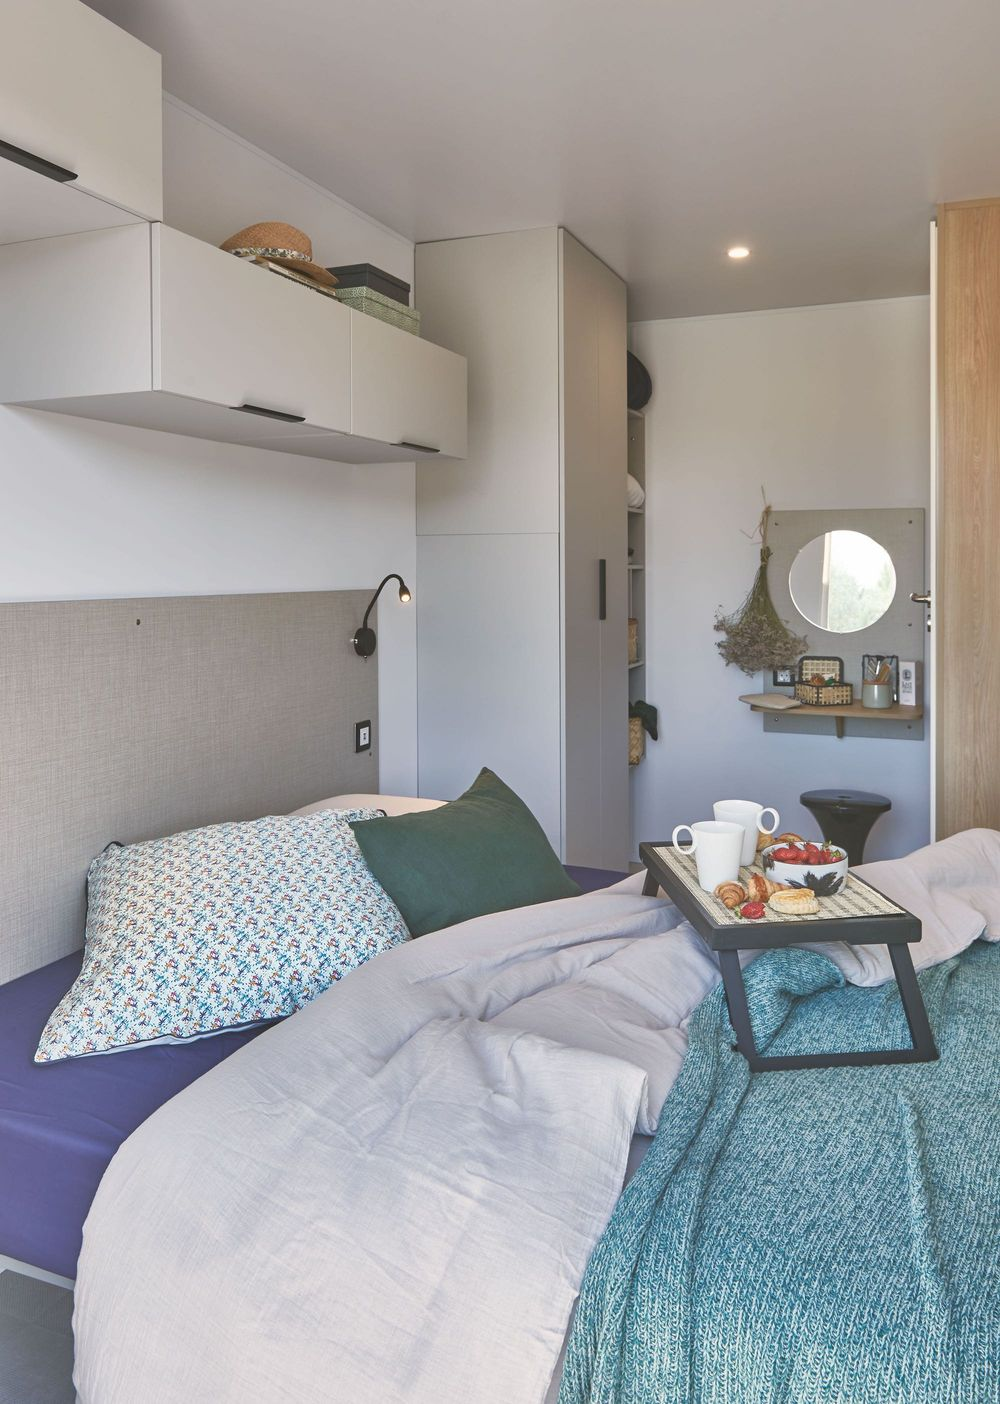 Louisiane Cyclades 2S - Mobil home Neuf - Vacance - Zen Mobil homes